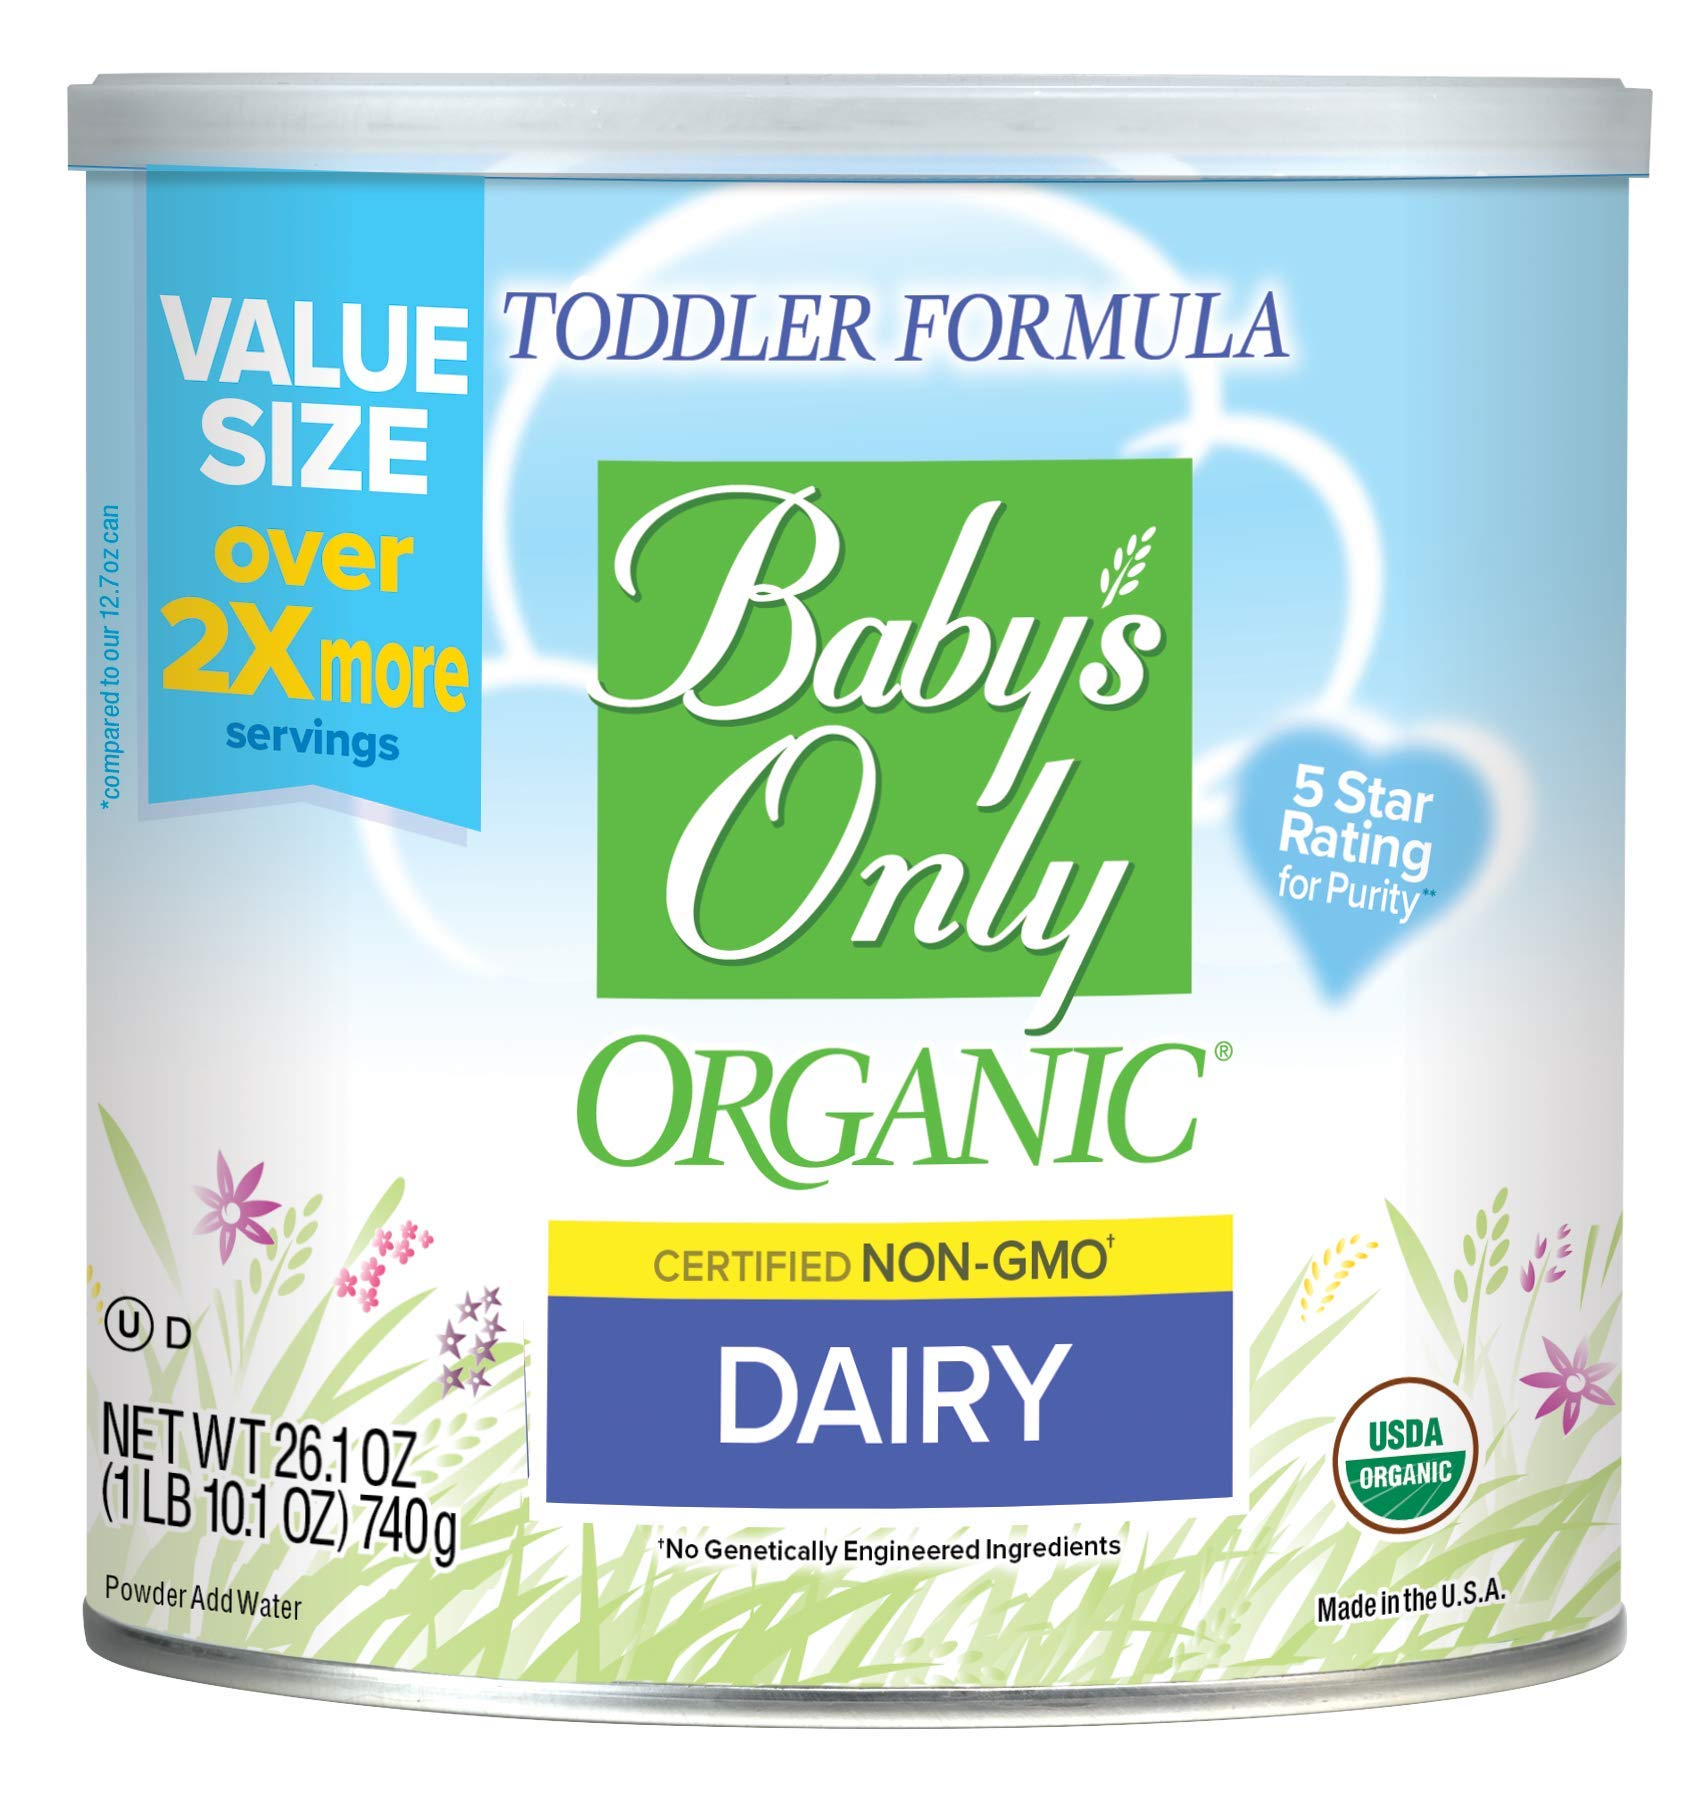 Baby's Only Organic Dairy Toddler Formula, 26.1 Oz (Pack of 6)   Non GMO   USDA Organic   Clean Label Project Verified   Value Size